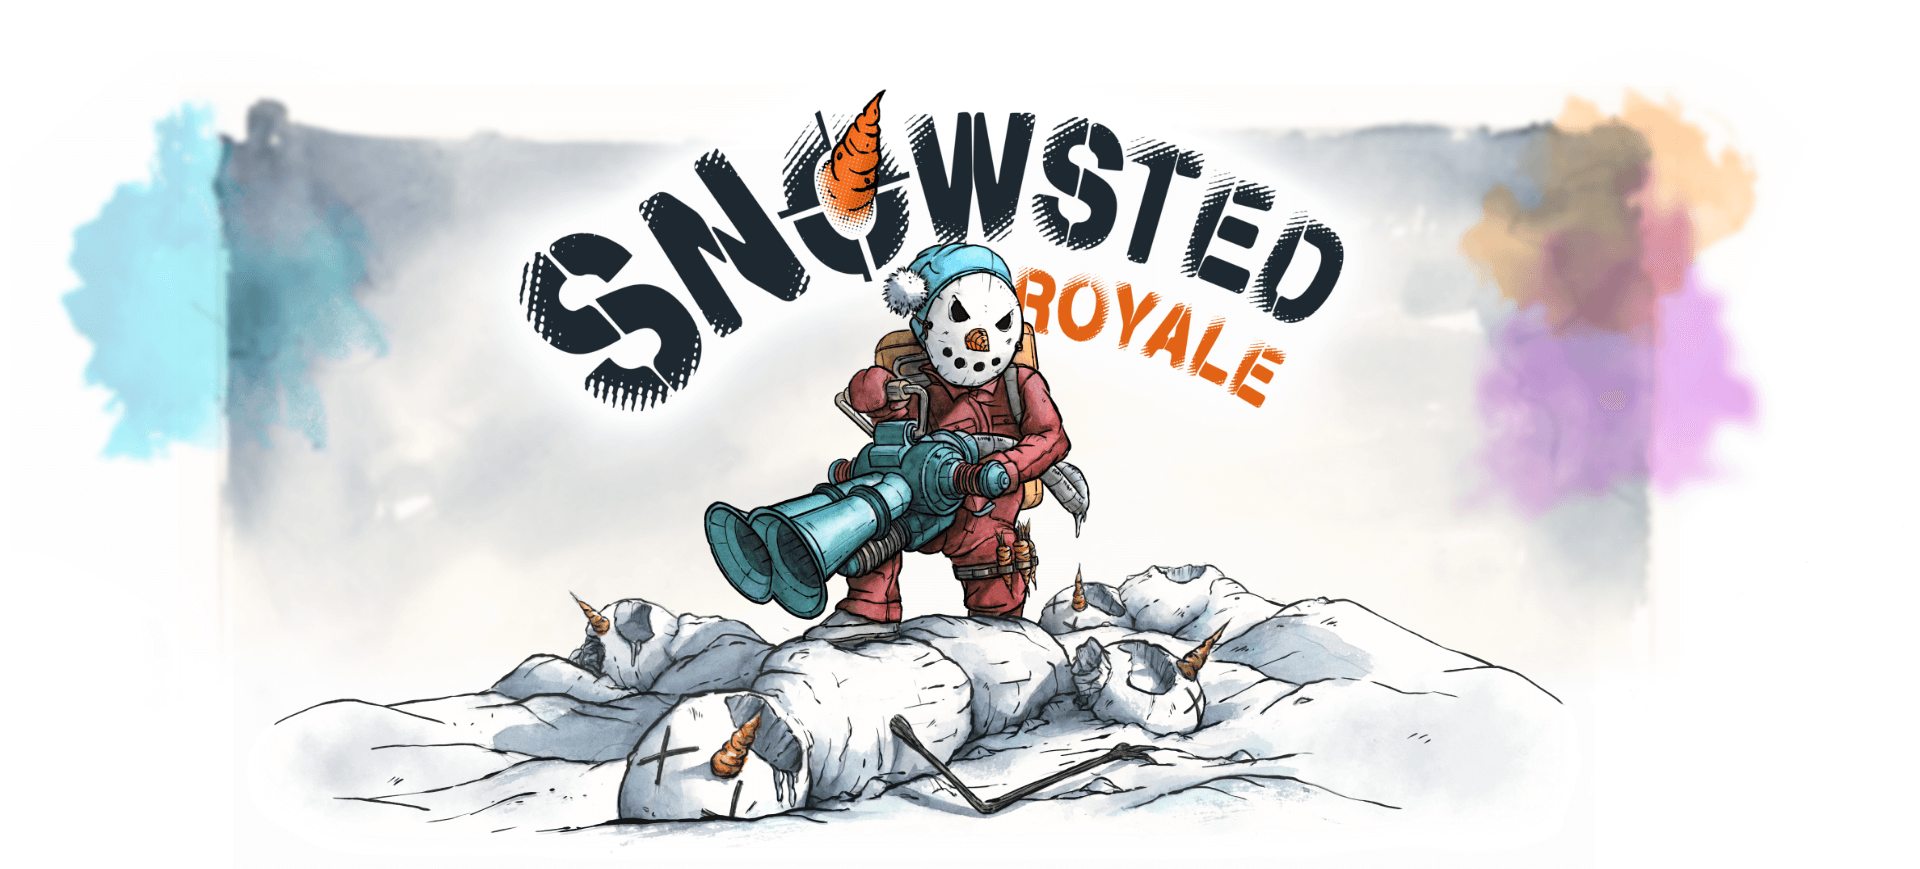 Snowsted Royale 2D Shooter Mobile Game